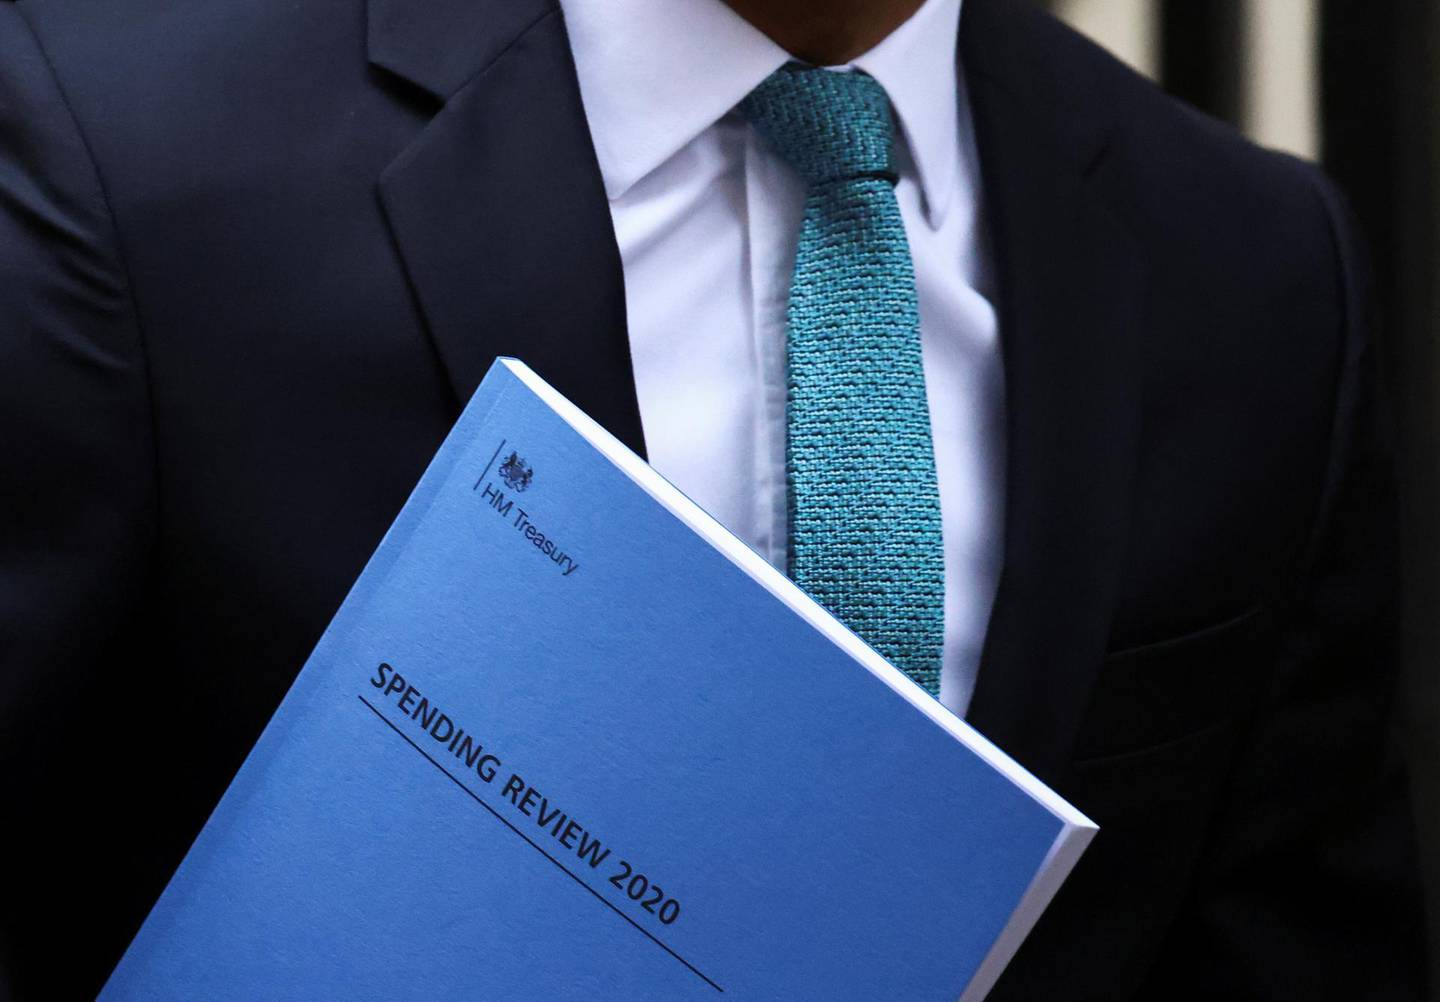 """Britain's Chancellor of the Exchequer Rishi Sunak carries the """"Spending Review 2020"""" document as he leaves Downing Street, in London, Britain, November 25, 2020. REUTERS/Henry Nicholls"""